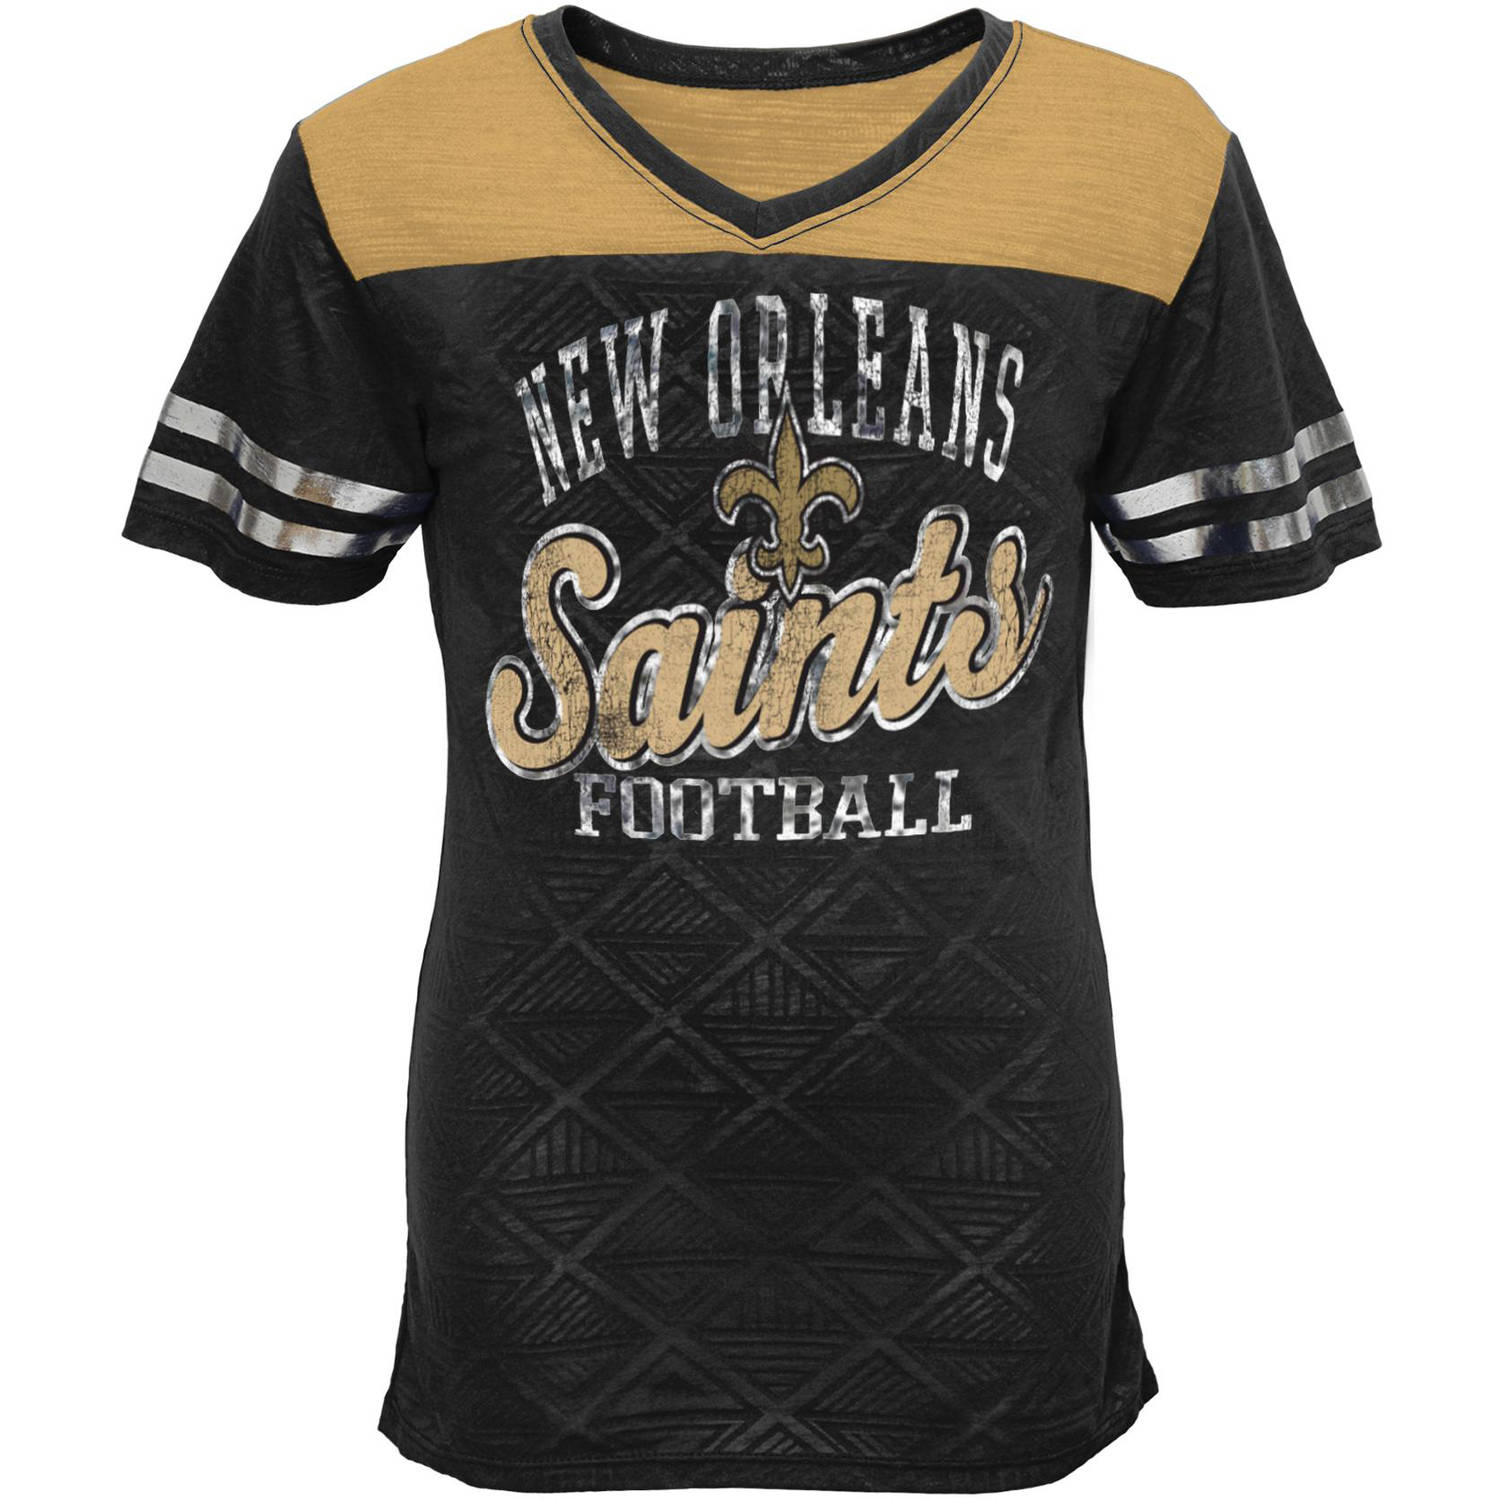 NFL Girls Saints Short Sleeve Vneck Team Top